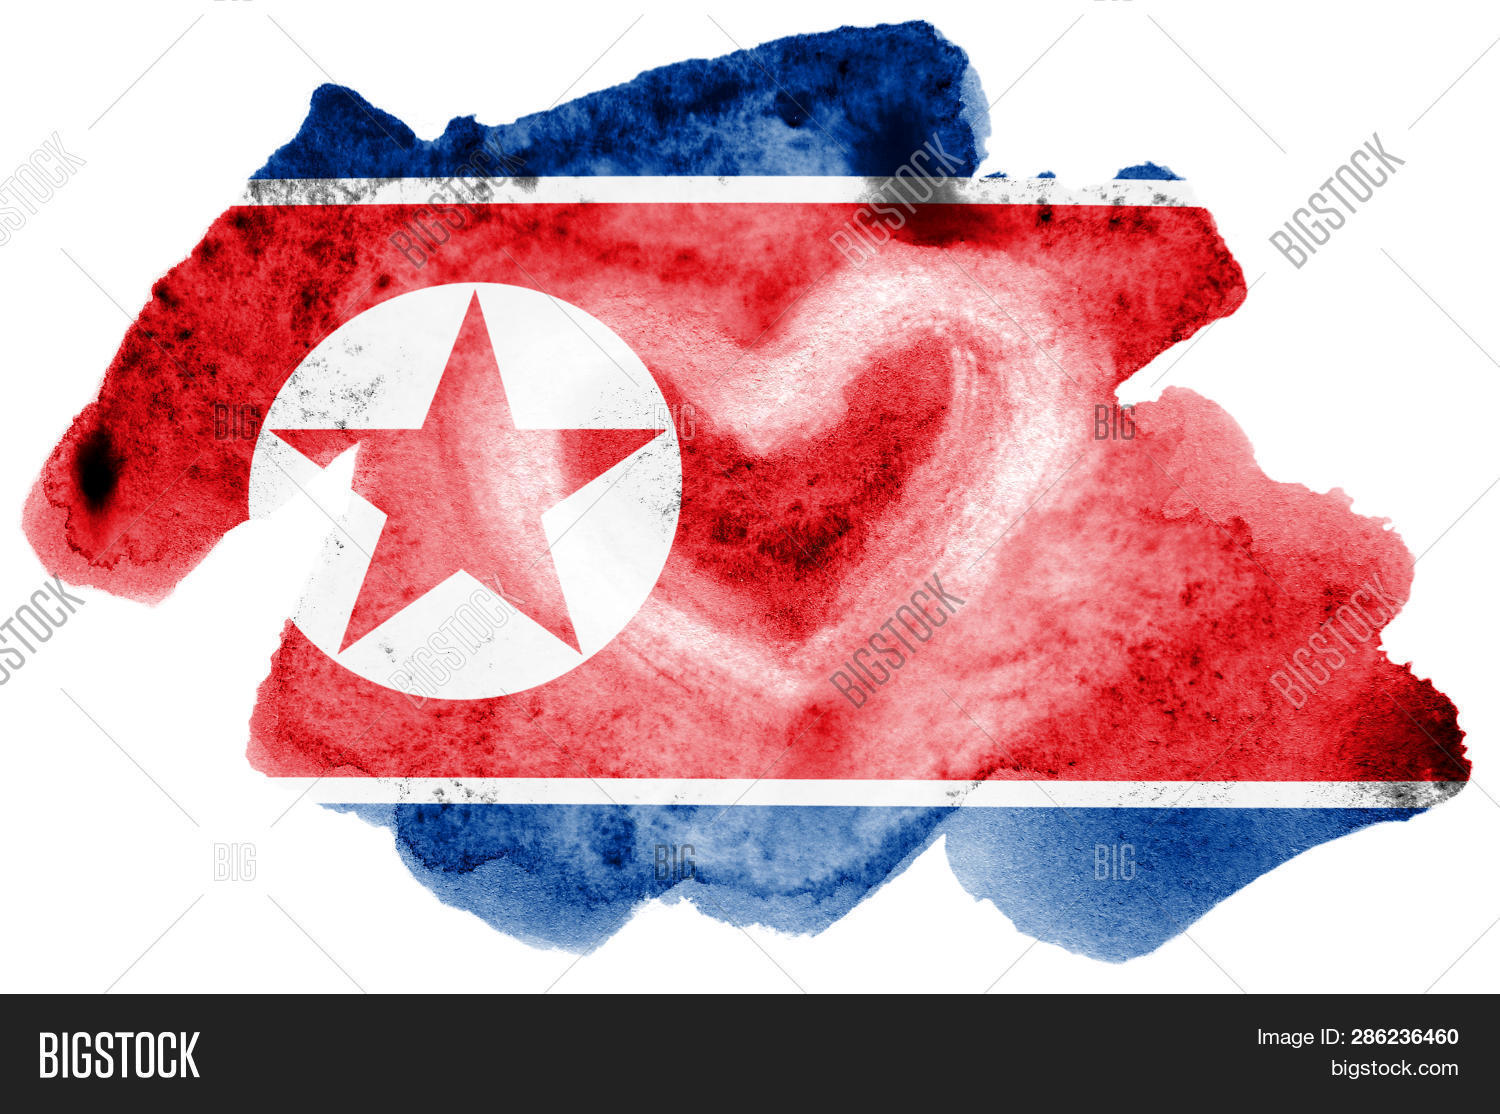 North Korea Flag Image & Photo (Free Trial) | Bigstock